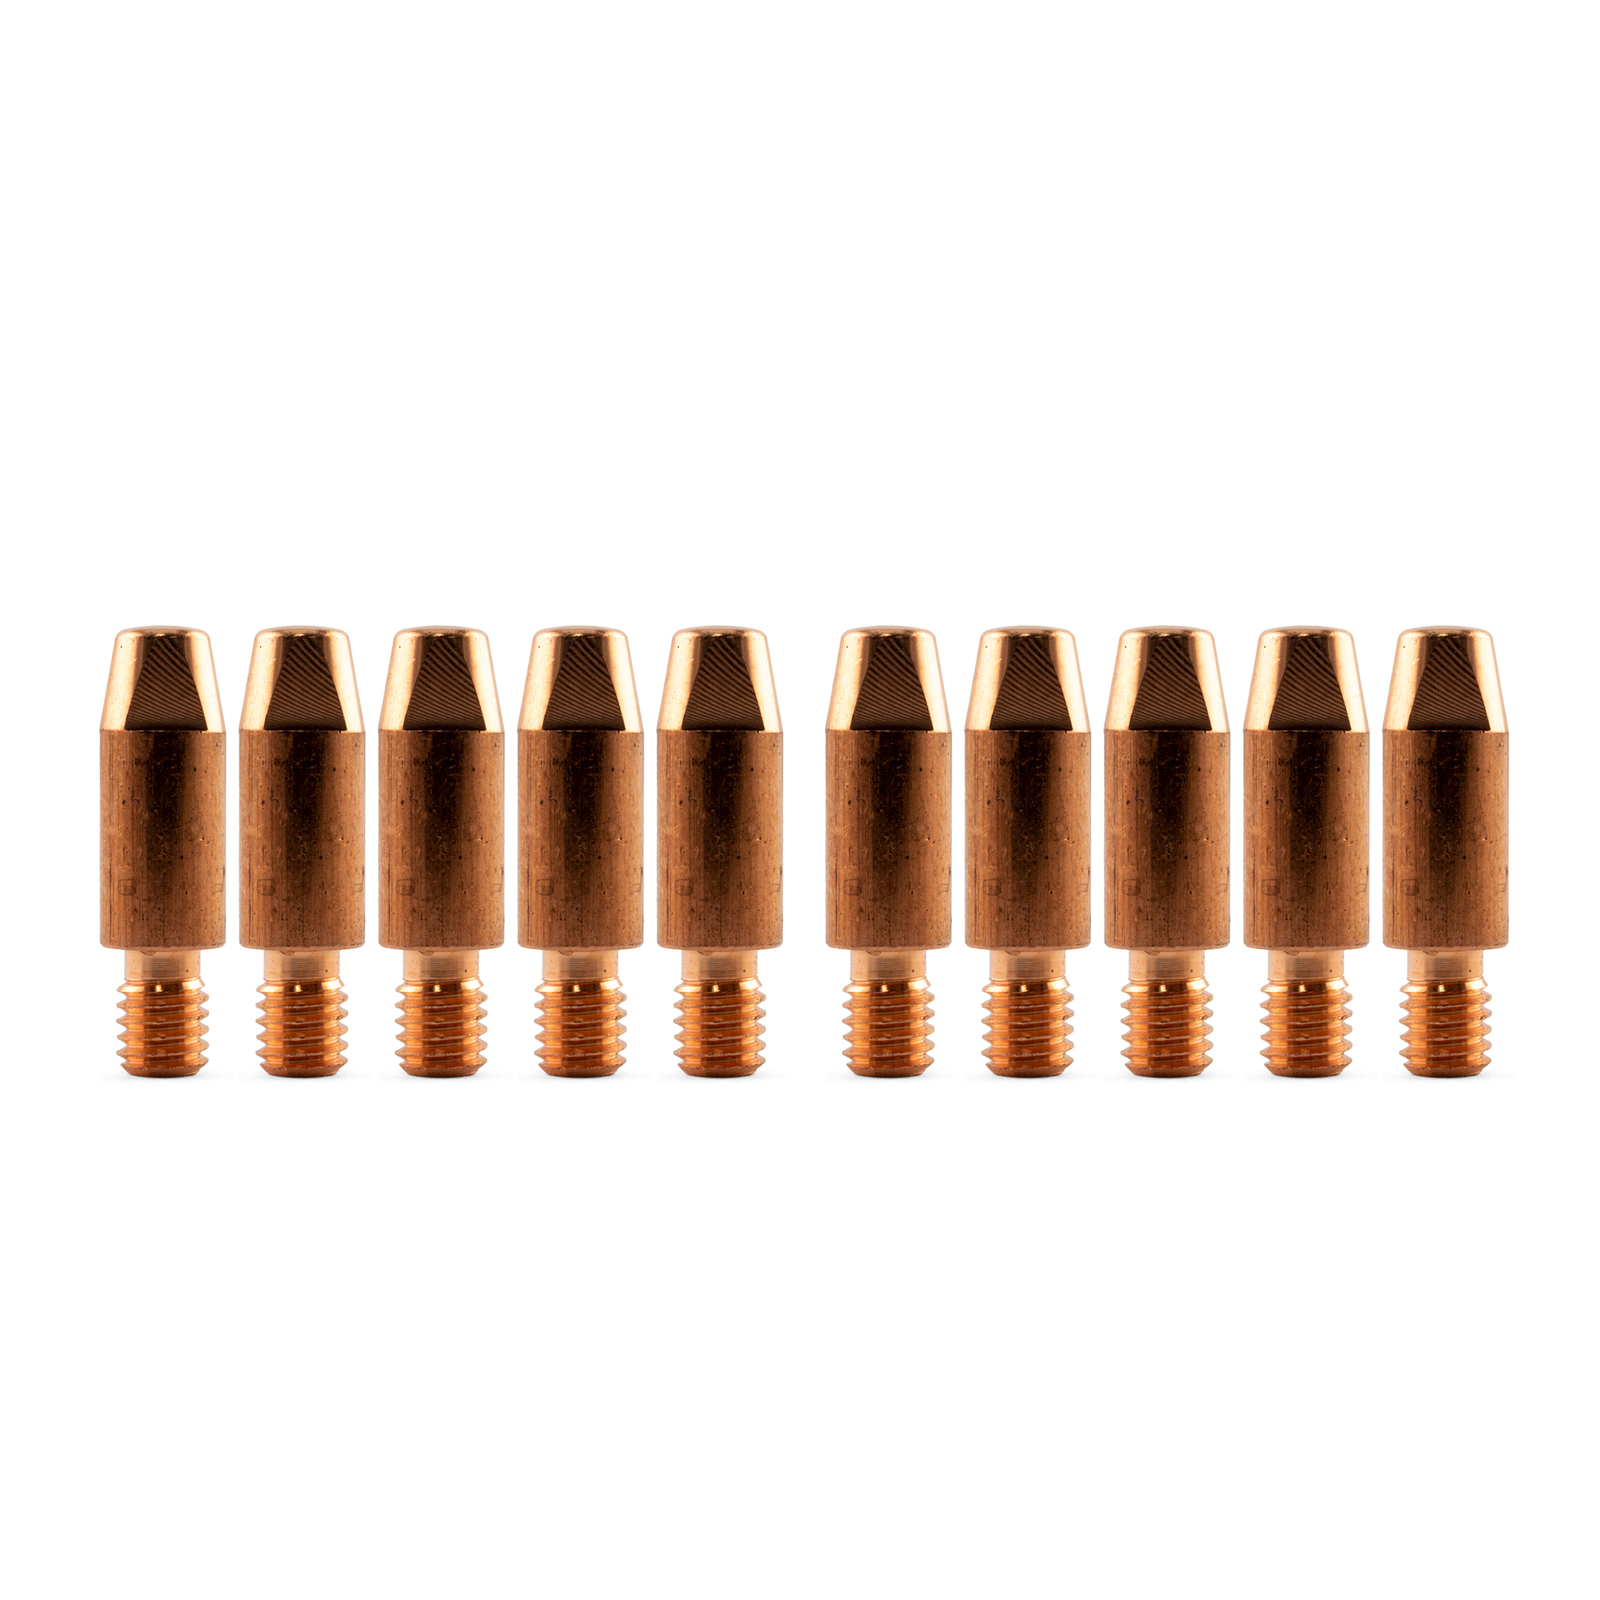 Binzel Style MIG Contact Tips 0.6mm - 10 pack - M6 x 8mm x 0.6mm